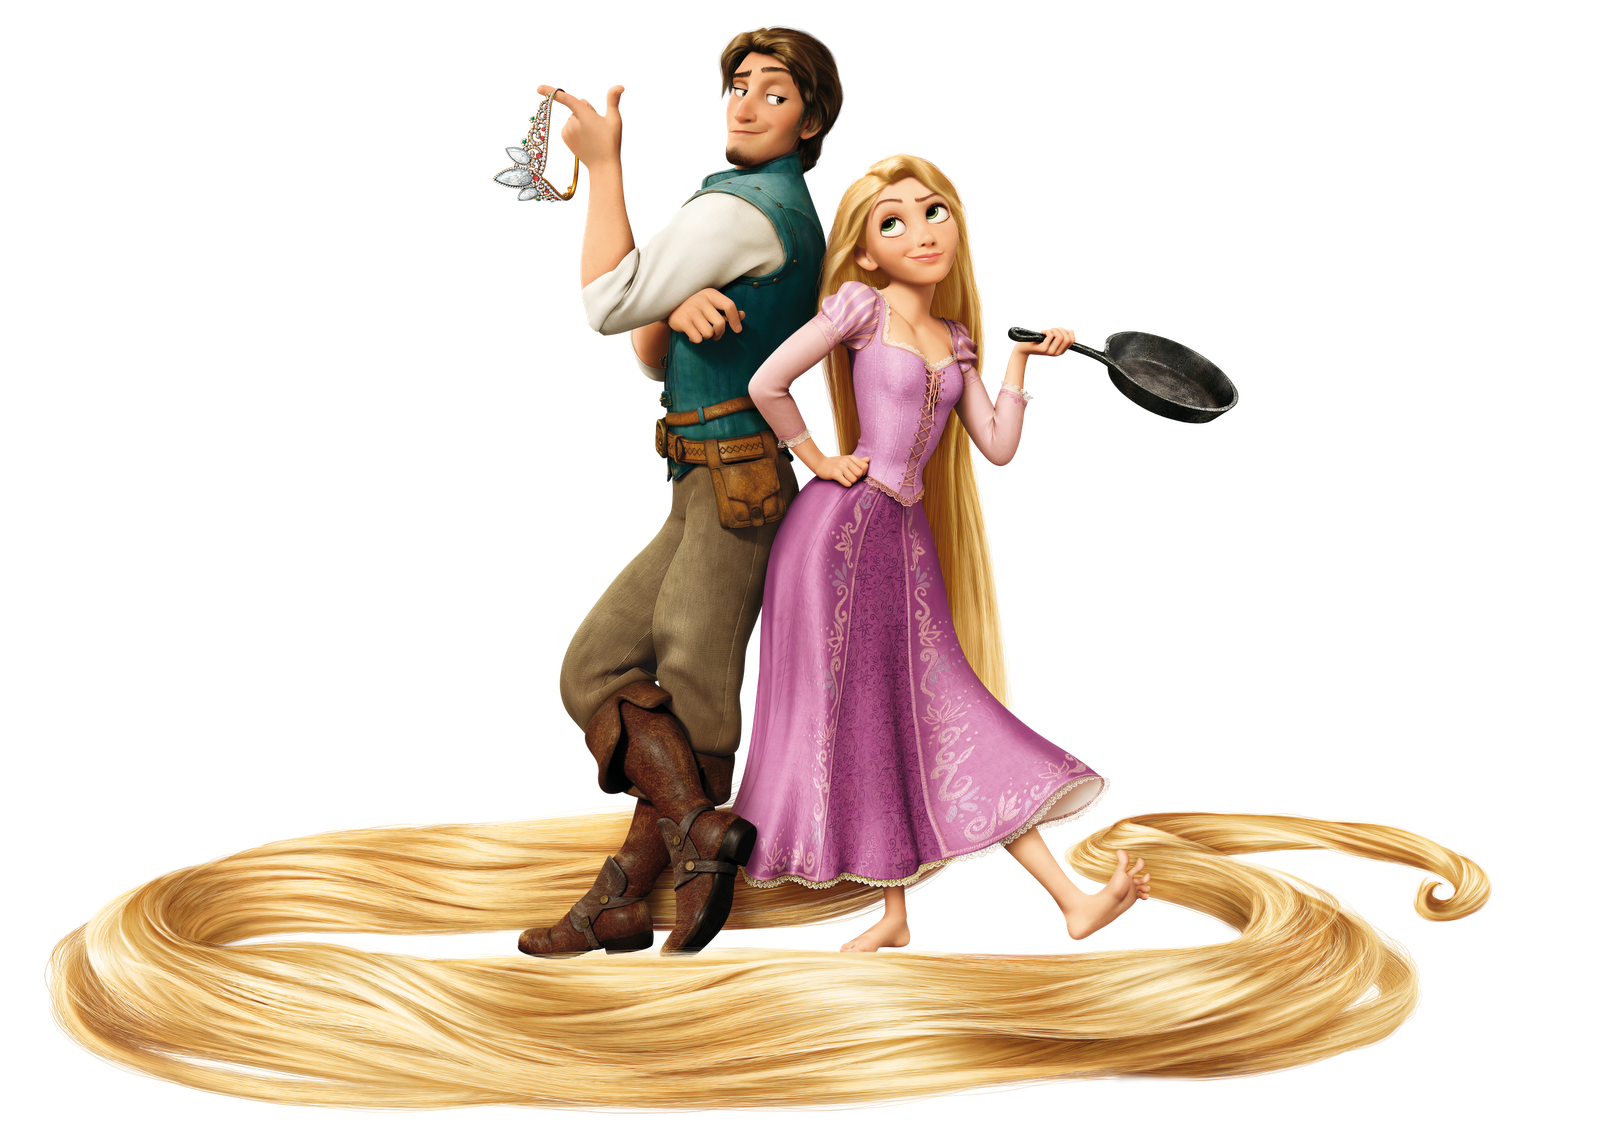 Character transparent tangled. Image flynn and rapunzel